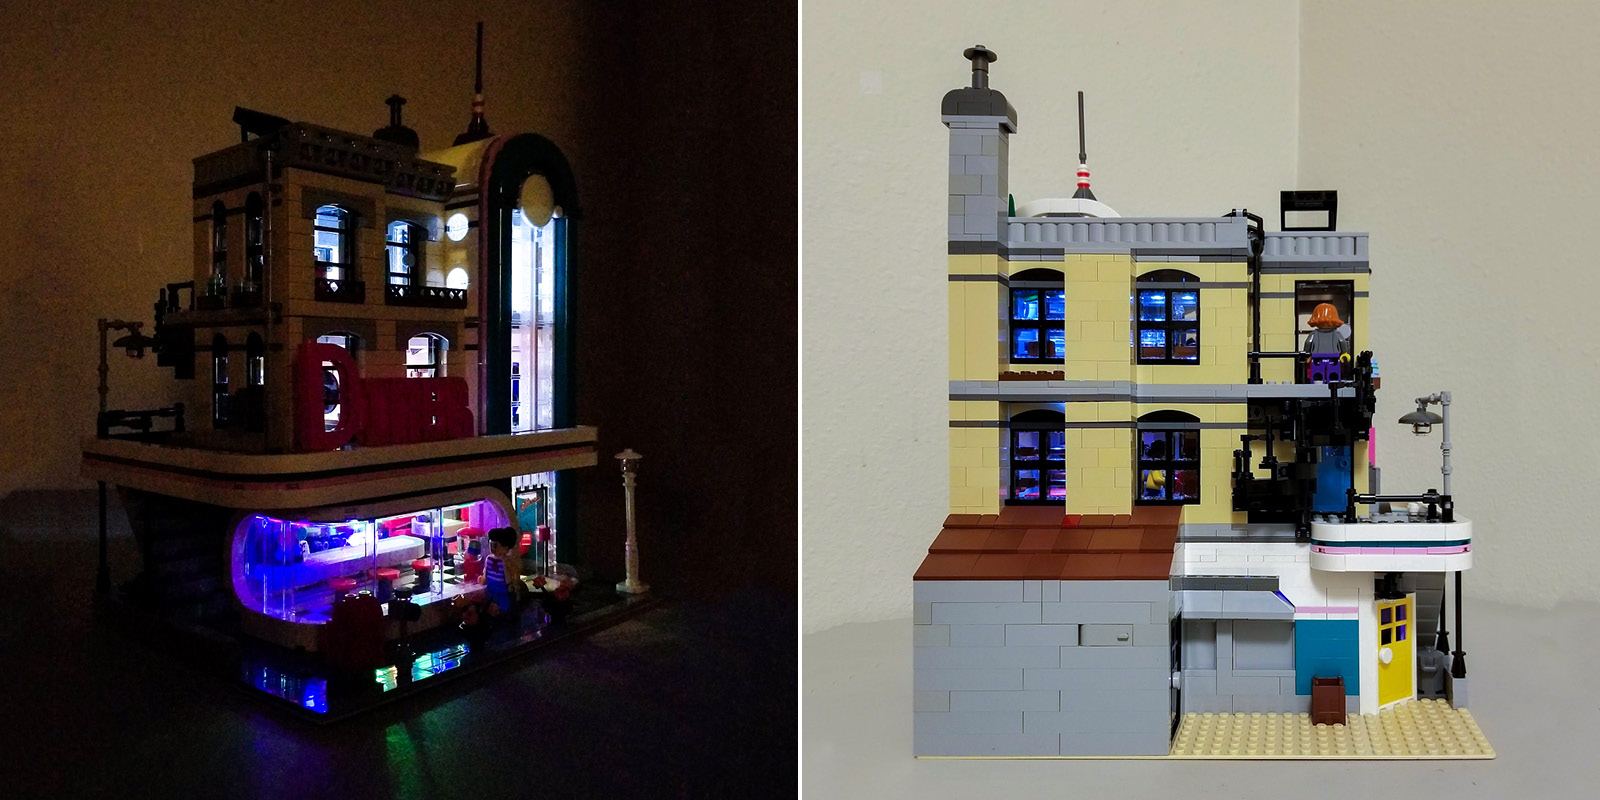 Downtown Diner with Lights (left), and back of Diner showing smokehouse built to cover the battery packs (right.)